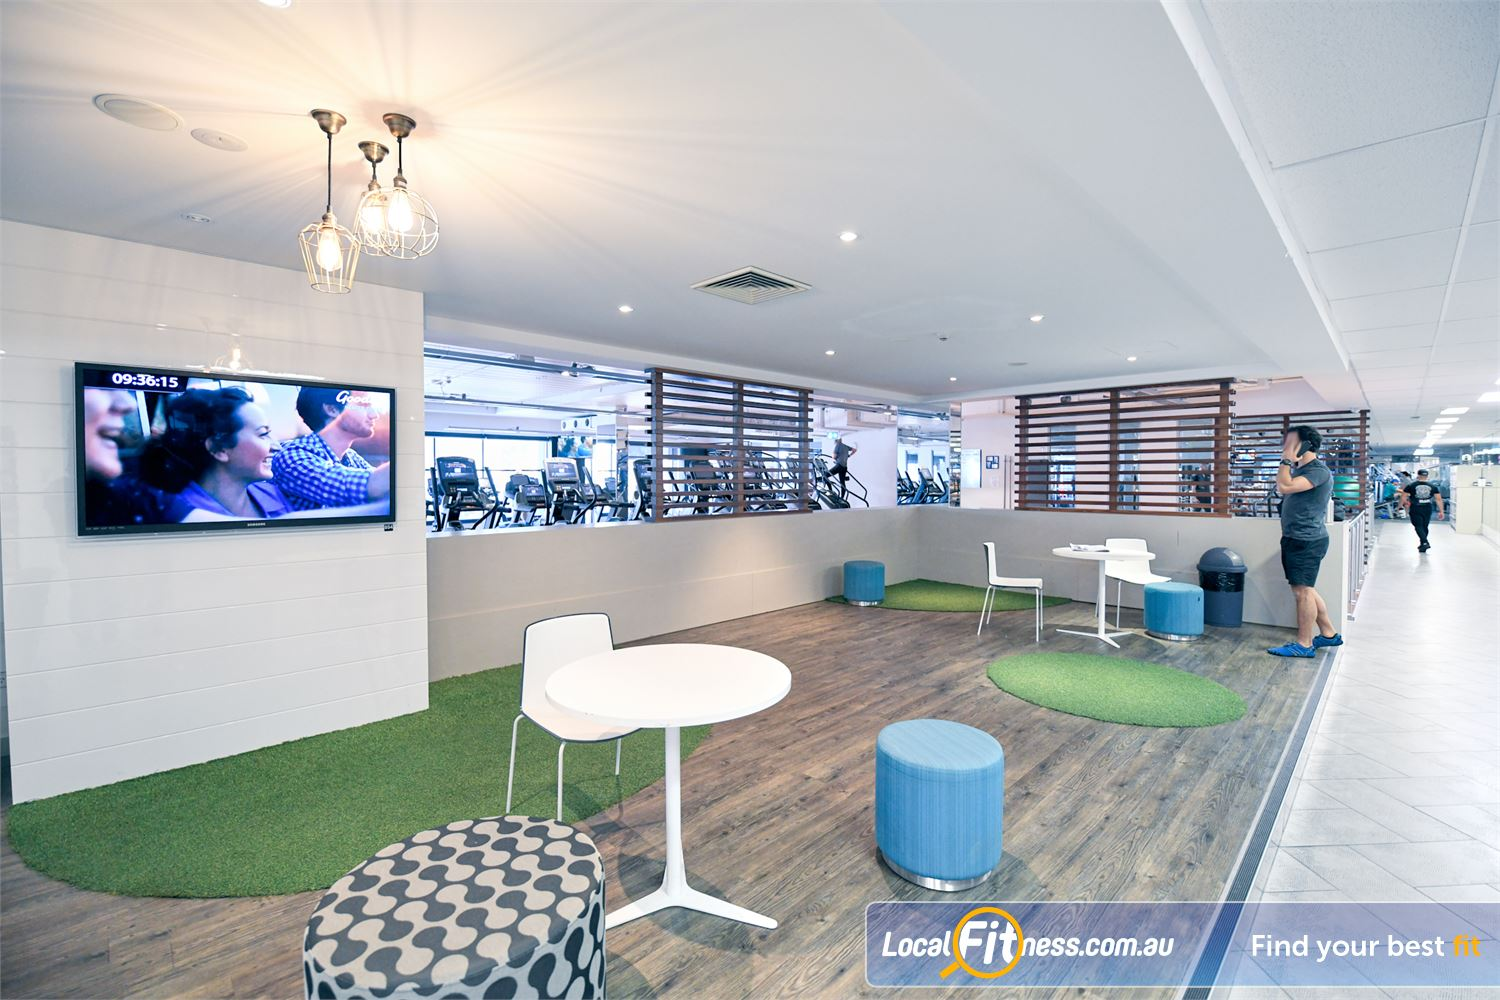 Goodlife Health Clubs Near Richmond North The spacious and relaxing members lounge.